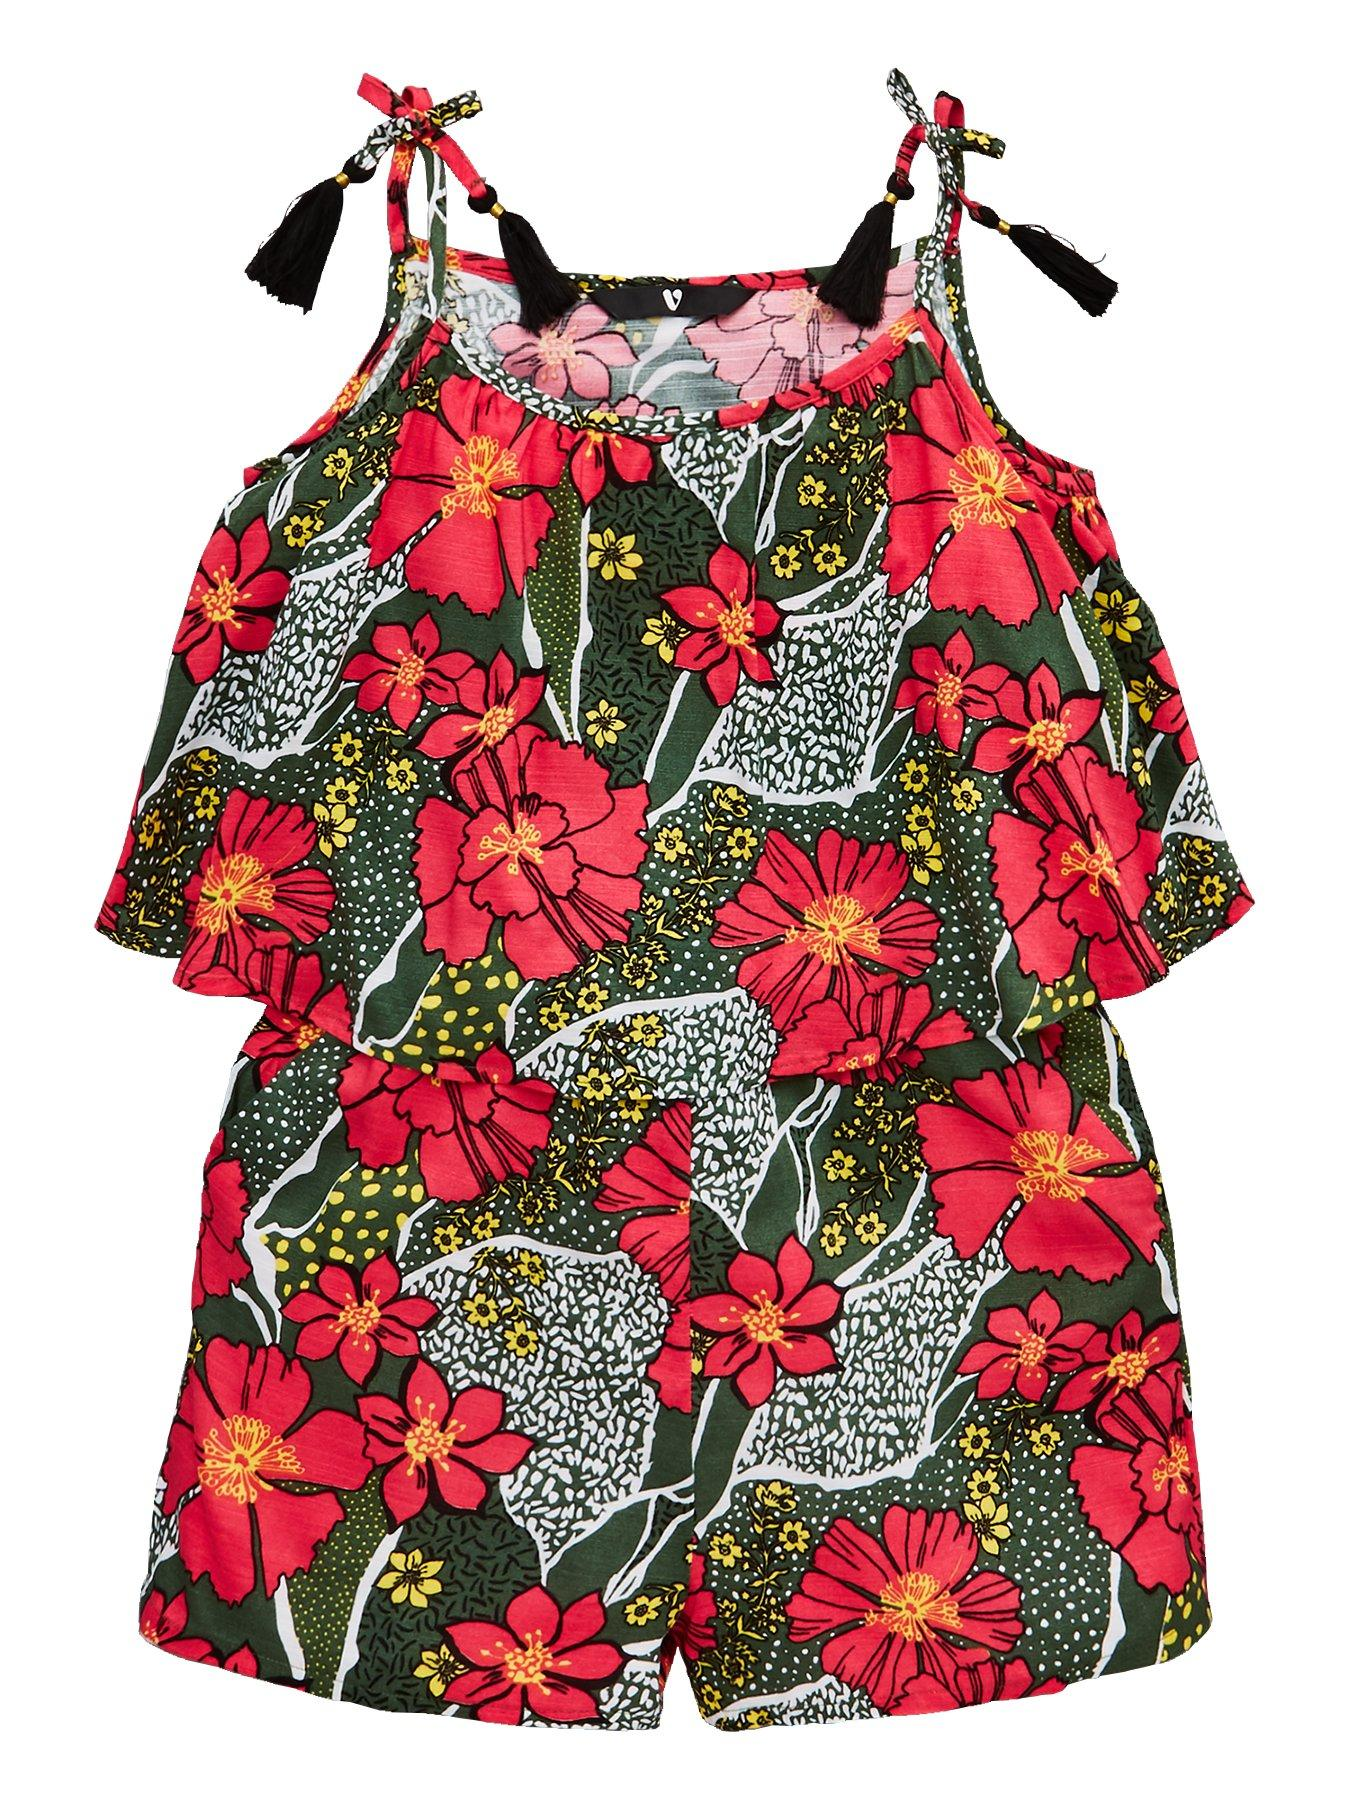 Girls' Clothing (0-24 Months) Beautiful Next Dress Bundle 12-18 Months Girls With Traditional Methods